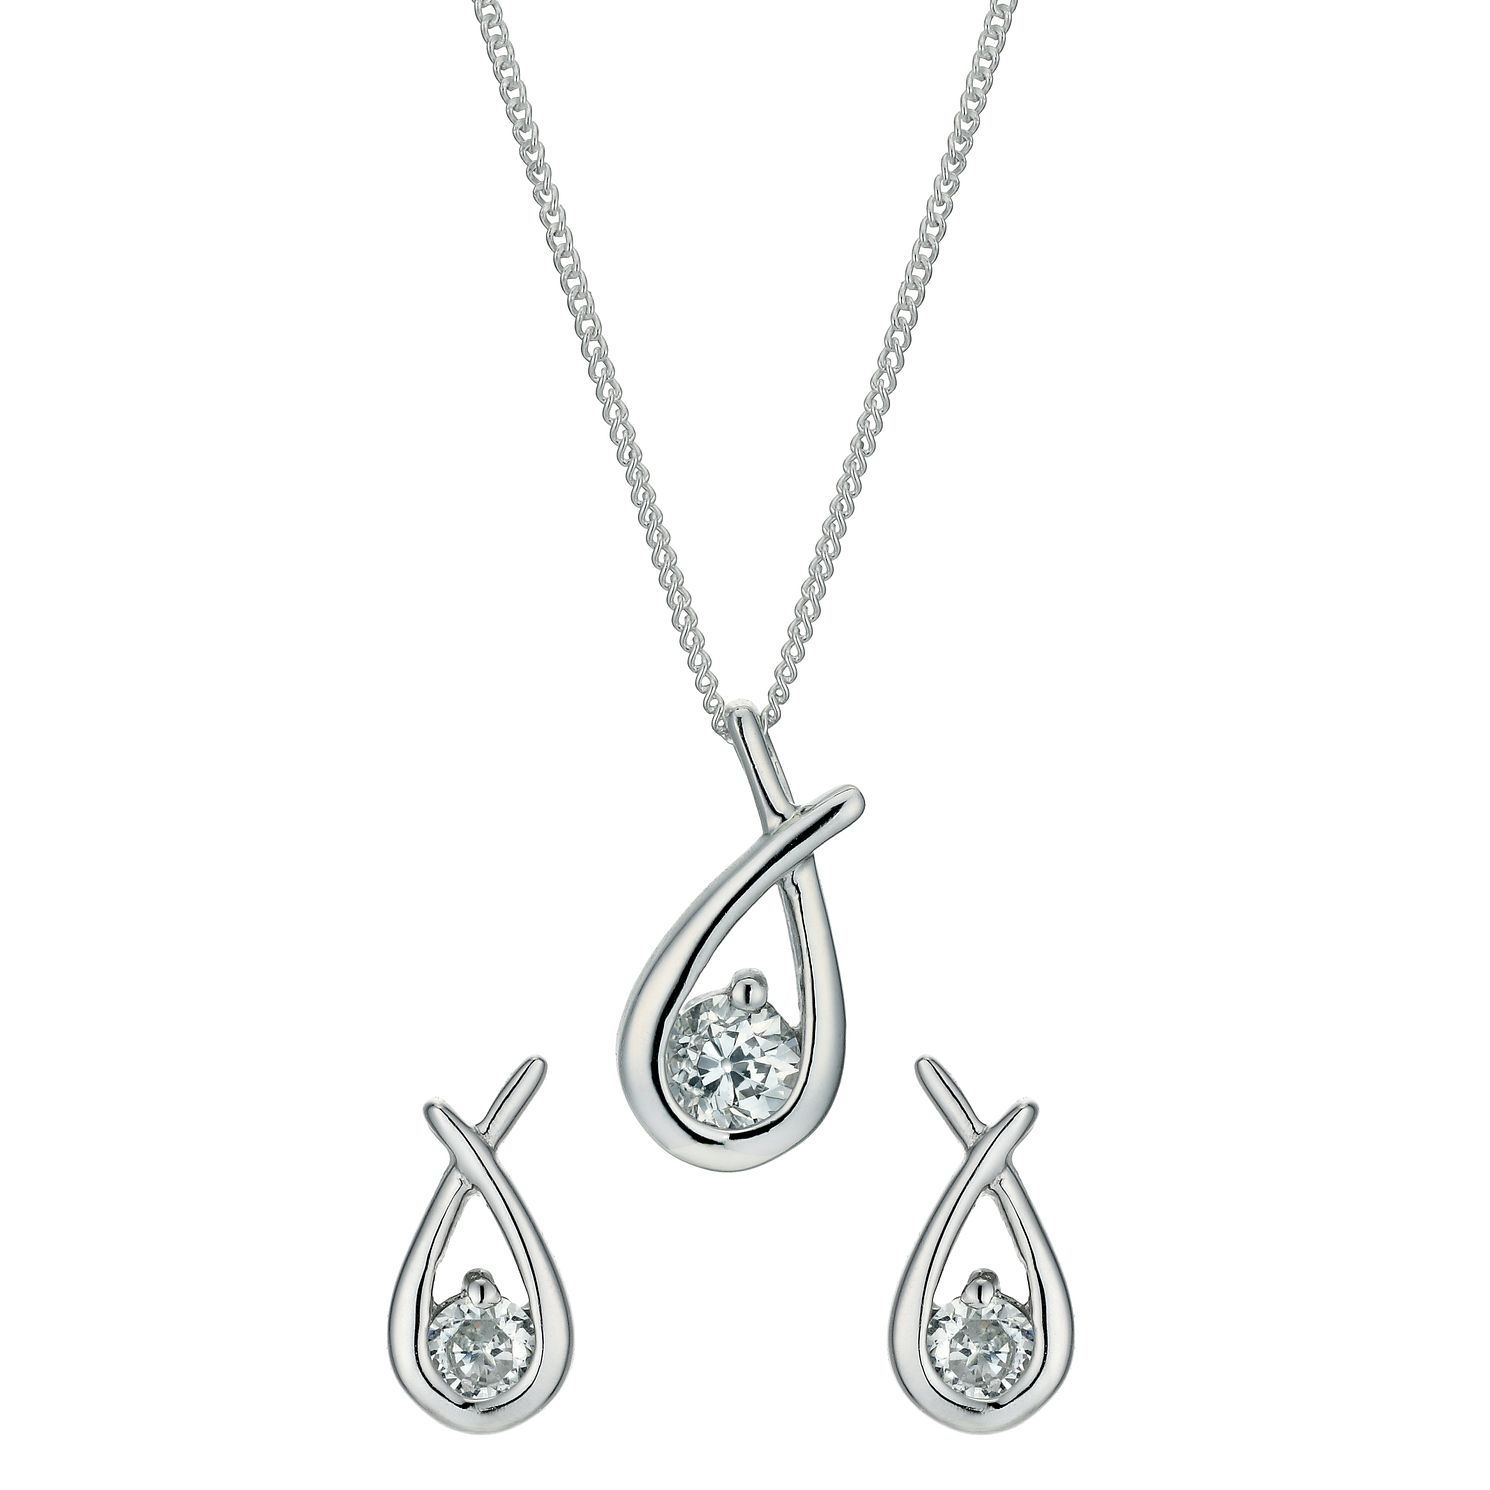 Sterling Silver Mini Love Knot Pendant And Earrings Set - Product number 3888673